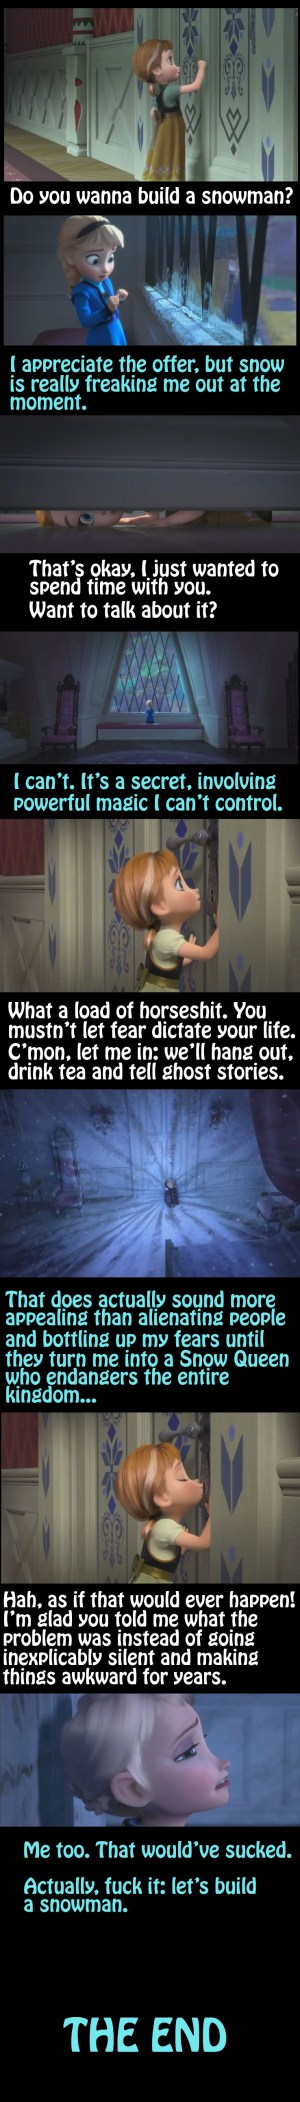 How basic communication could have made Frozen a much shorter film